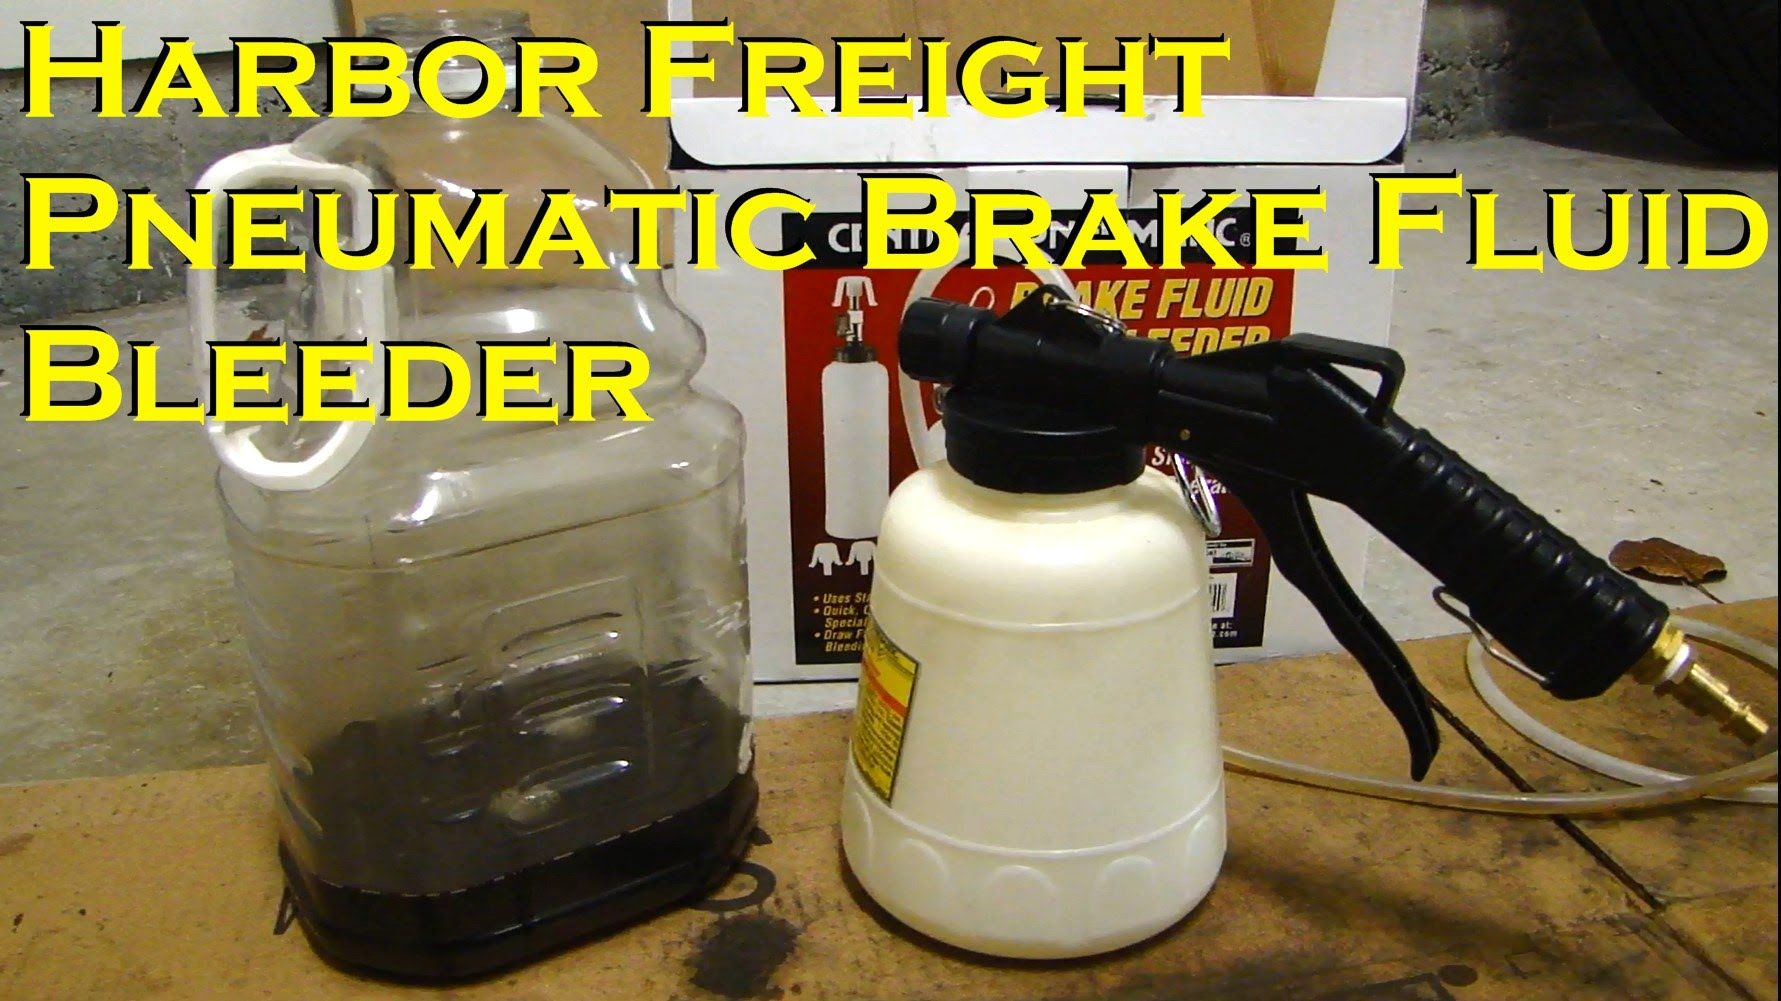 Harbor Freight Pneumatic Brake Fluid Bleeder One Person